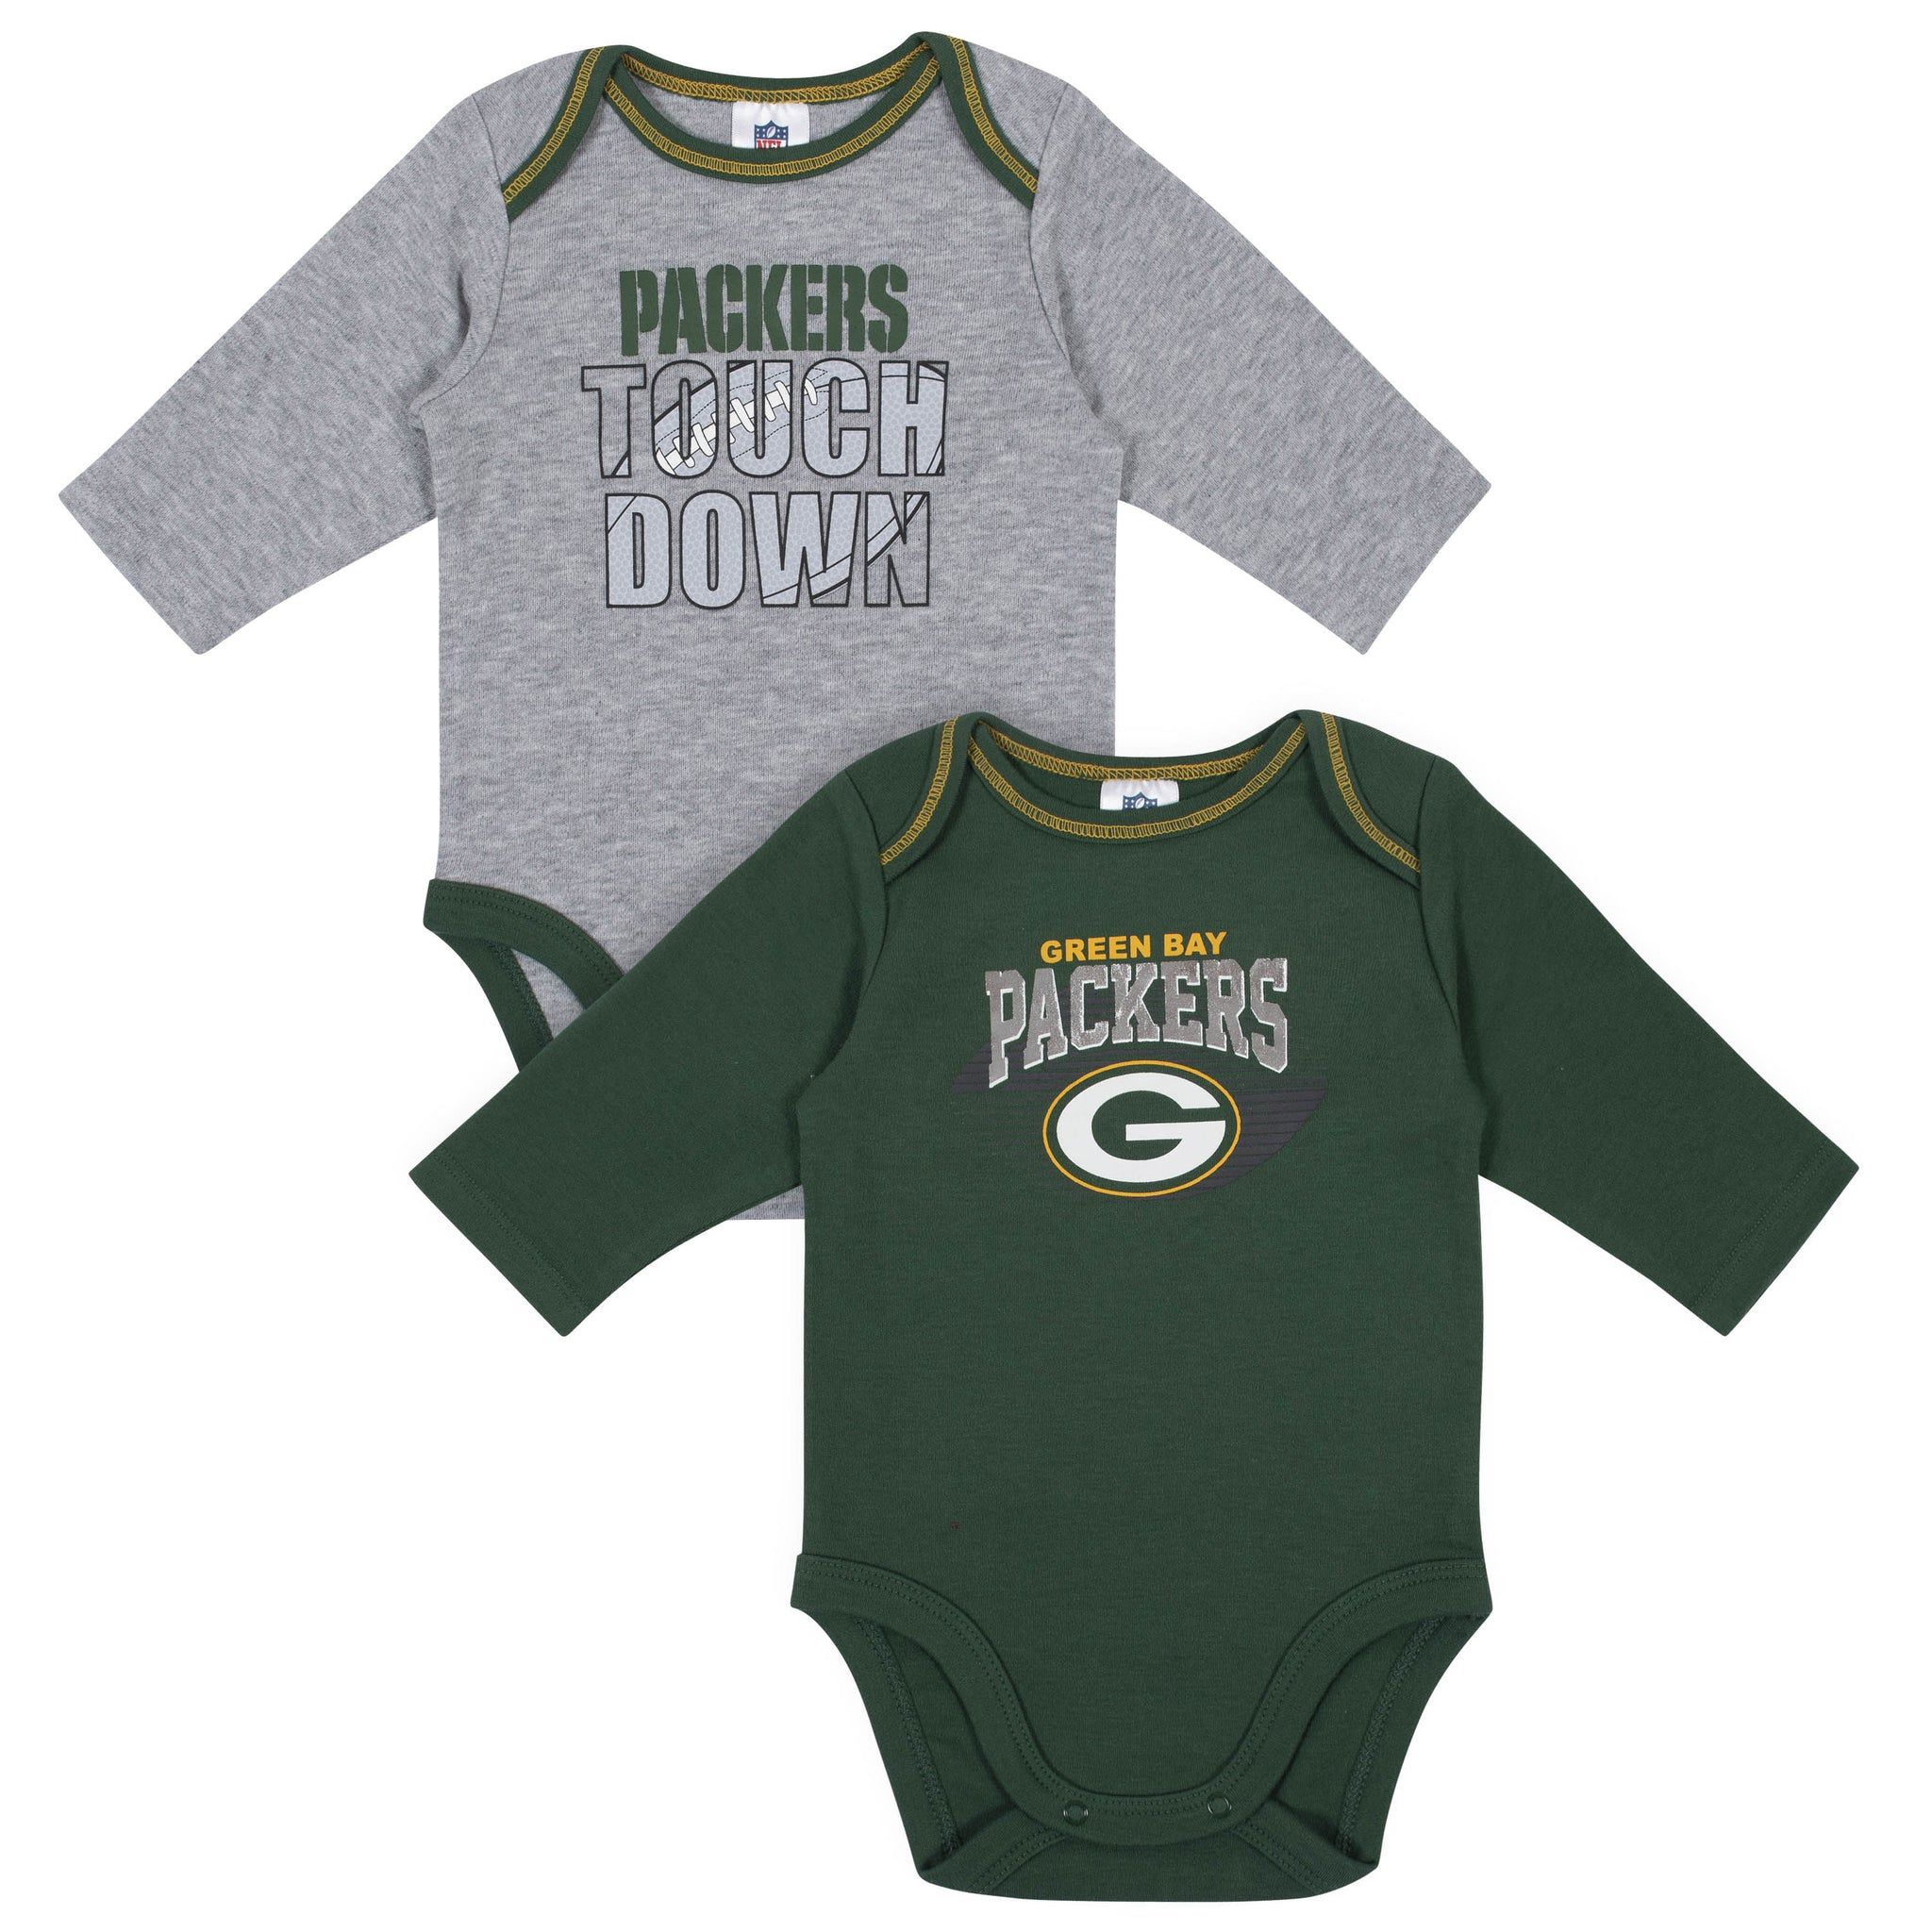 Baby Boys Green Bay Packers Long Sleeve Bodysuit, 2-pack -Gerber Childrenswear